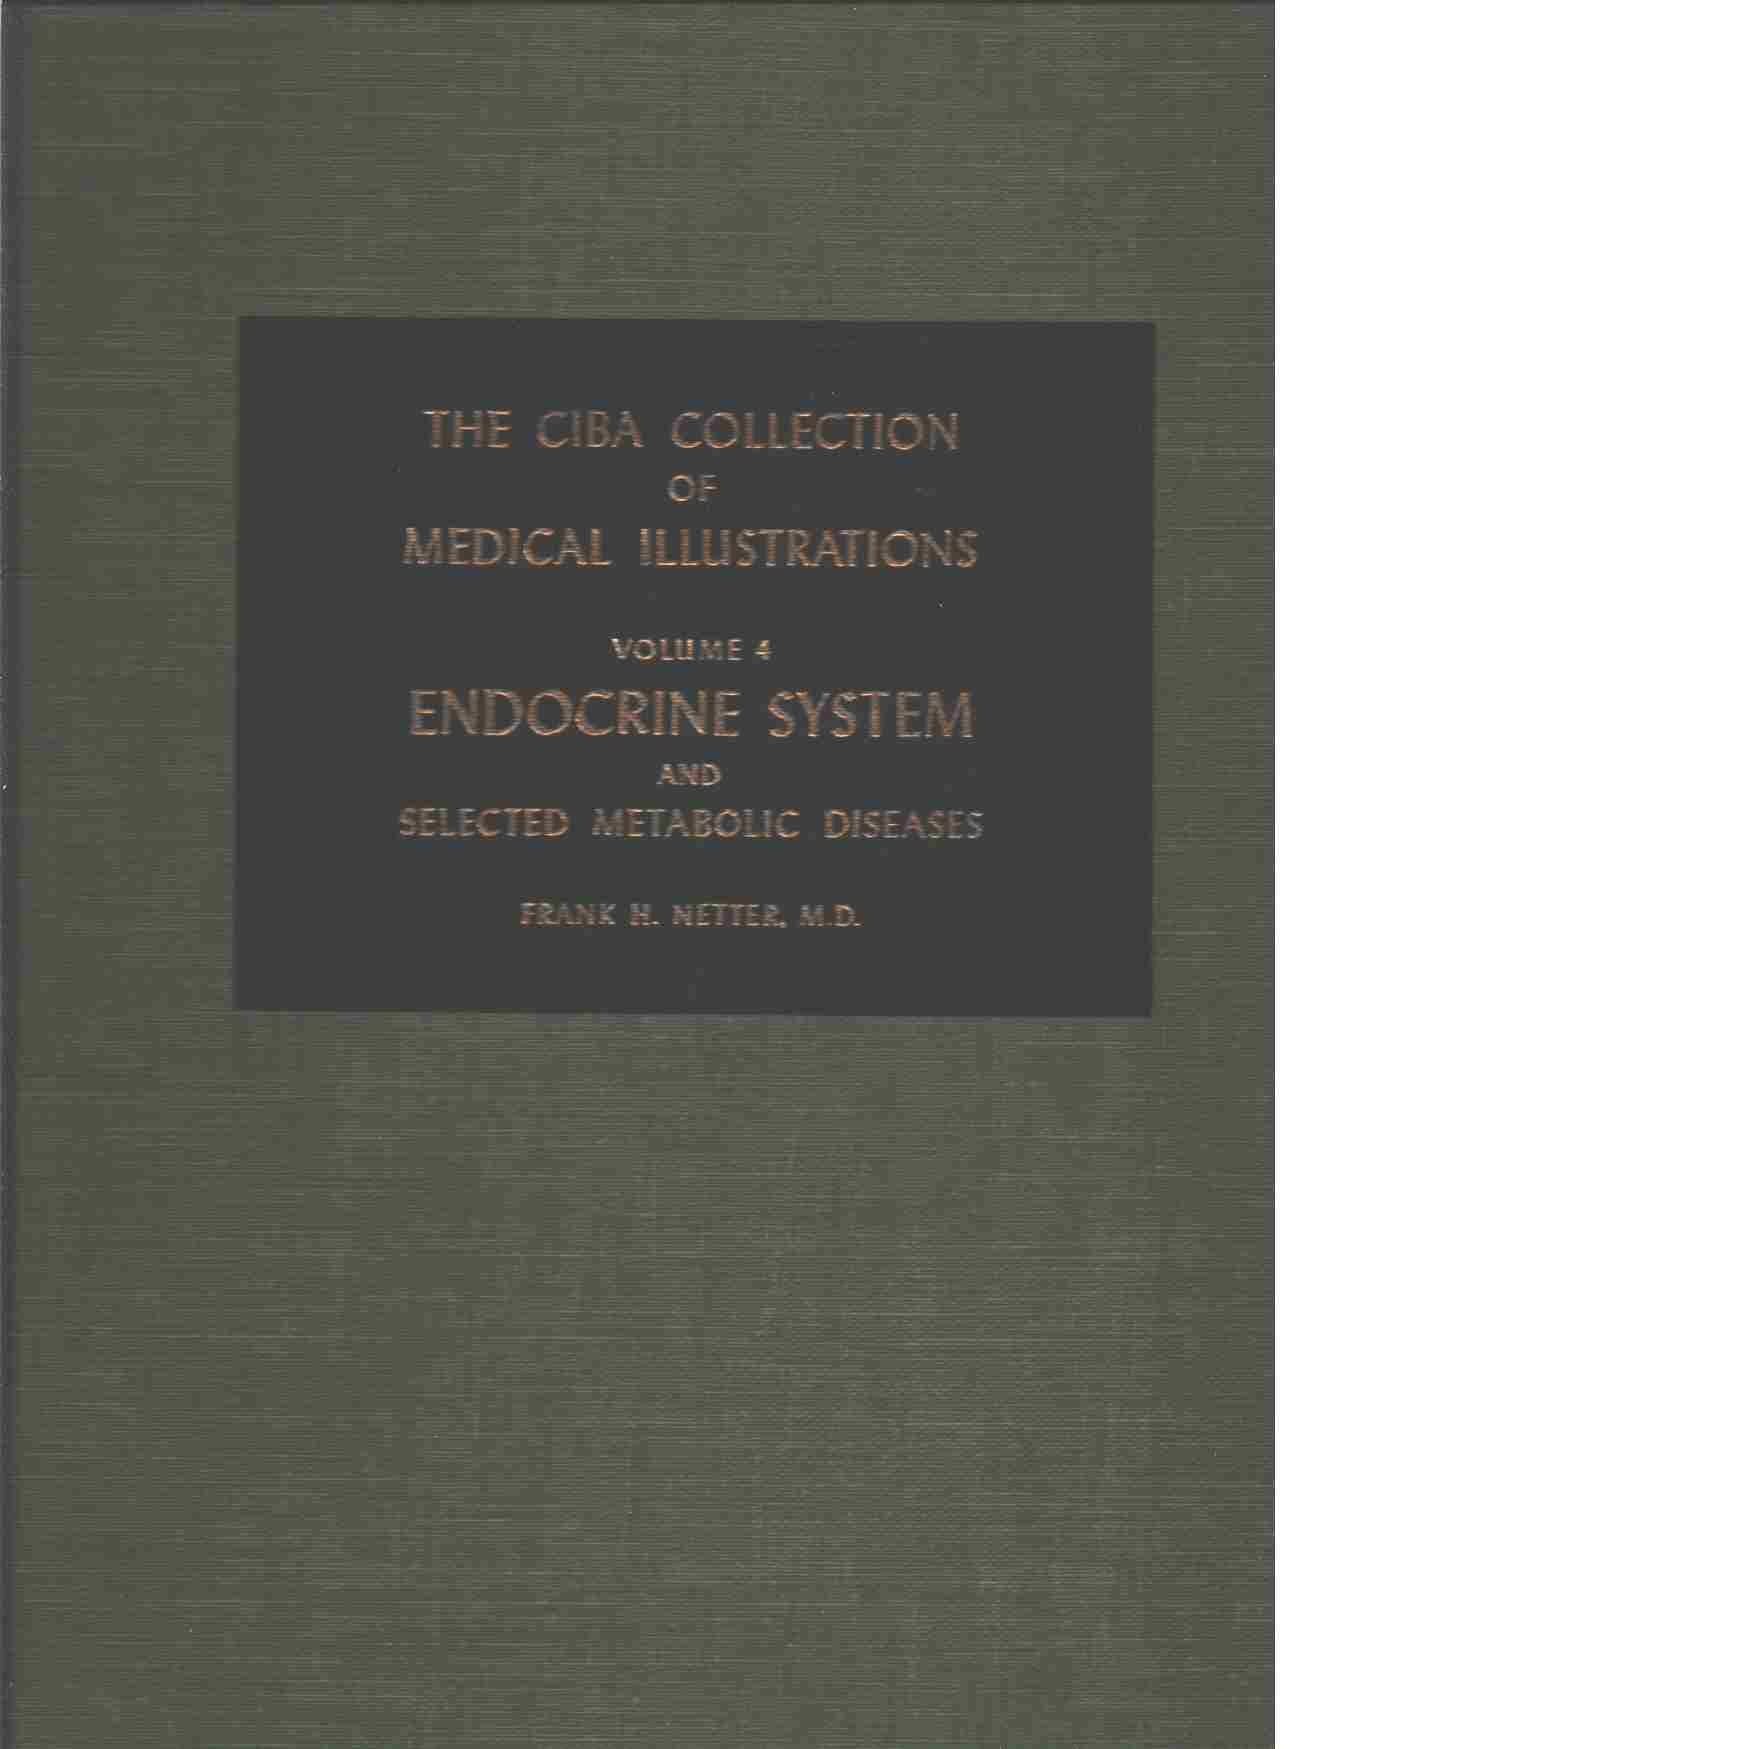 The Ciba Collection of Medical Illustrations, Volume 4 Endocrine  System and selected metabolic diseases - Netter Frank H.